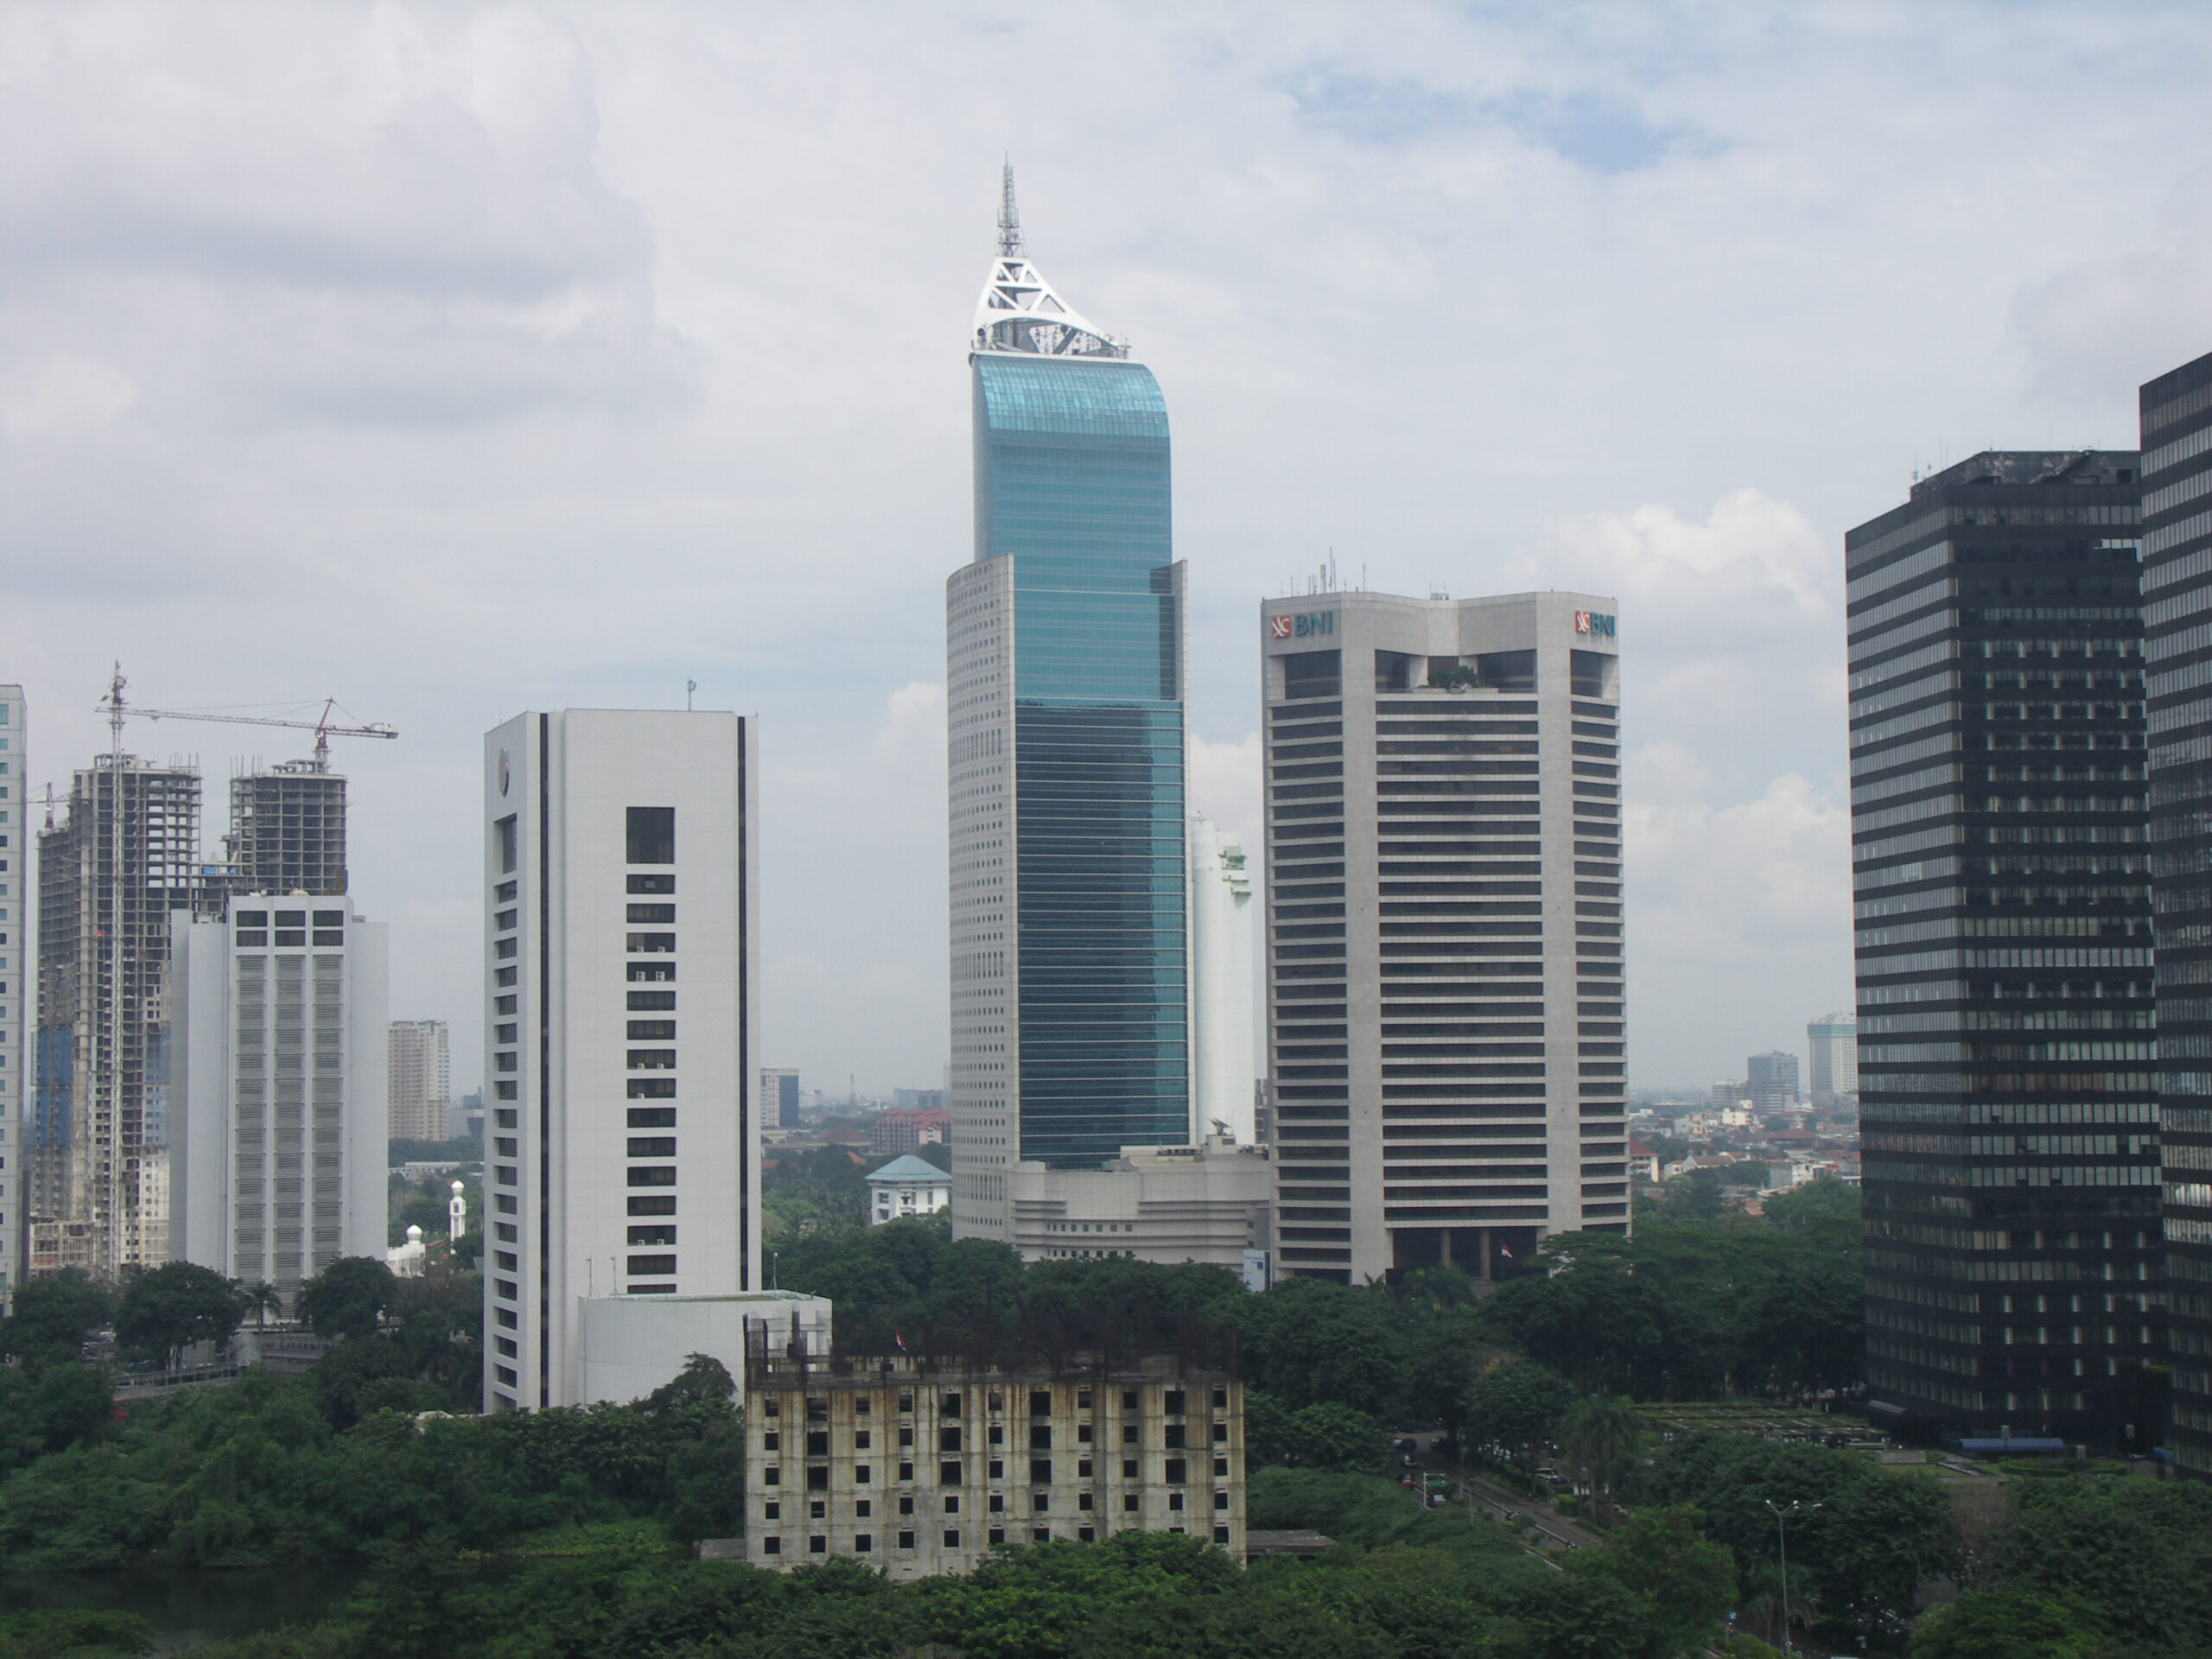 Indonesia's economic development: contributing to a sustainable growth pattern [WP1152]